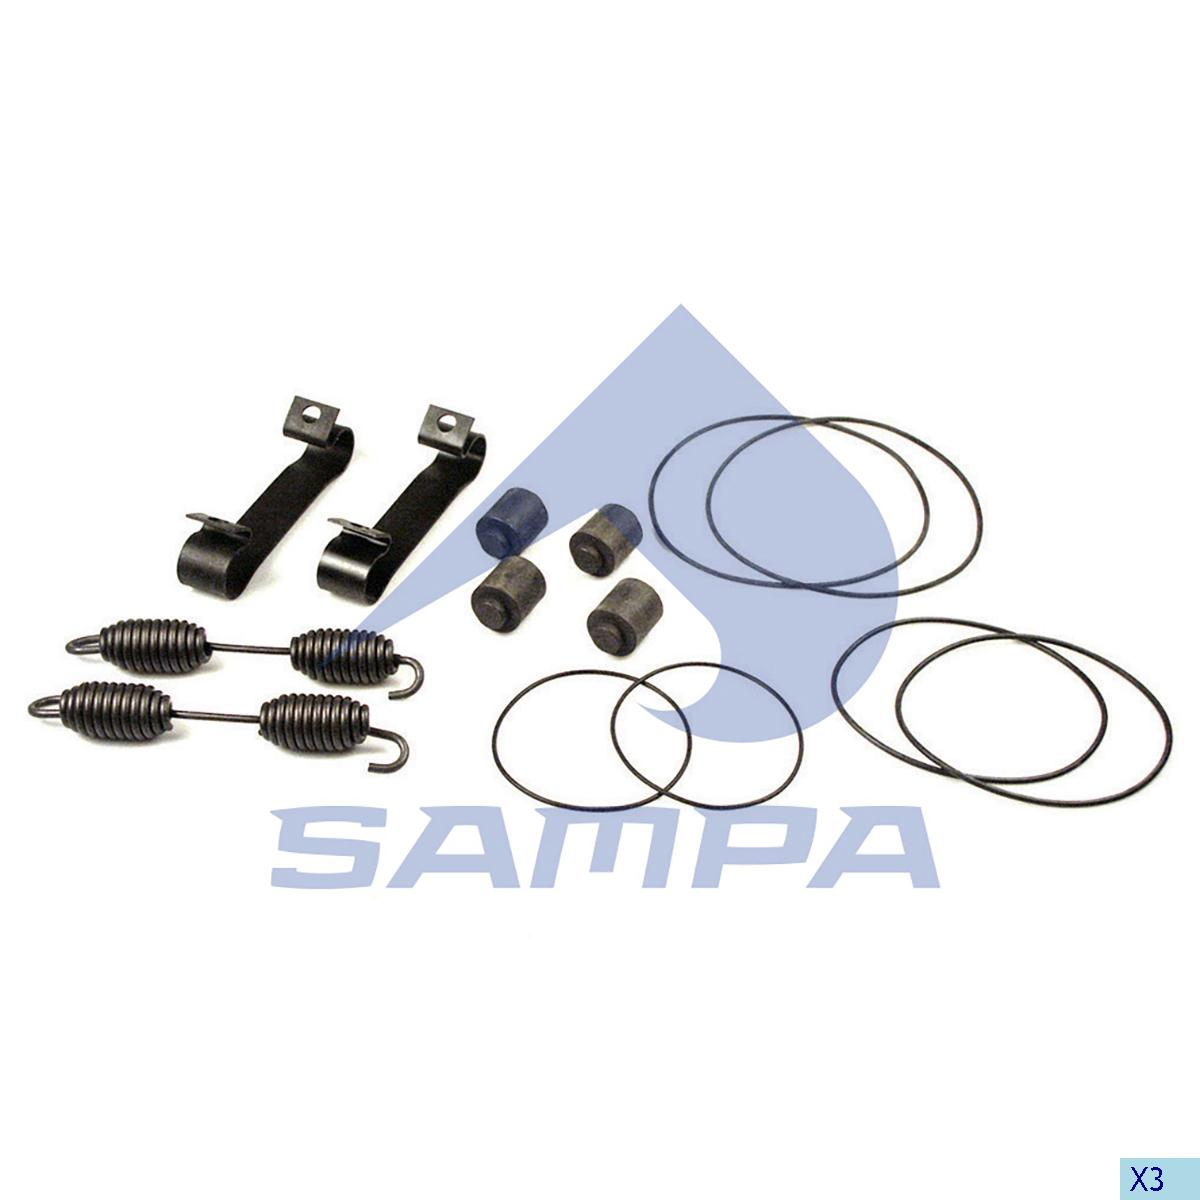 Repair Kit, Brake Shoe, Sauer, Brake